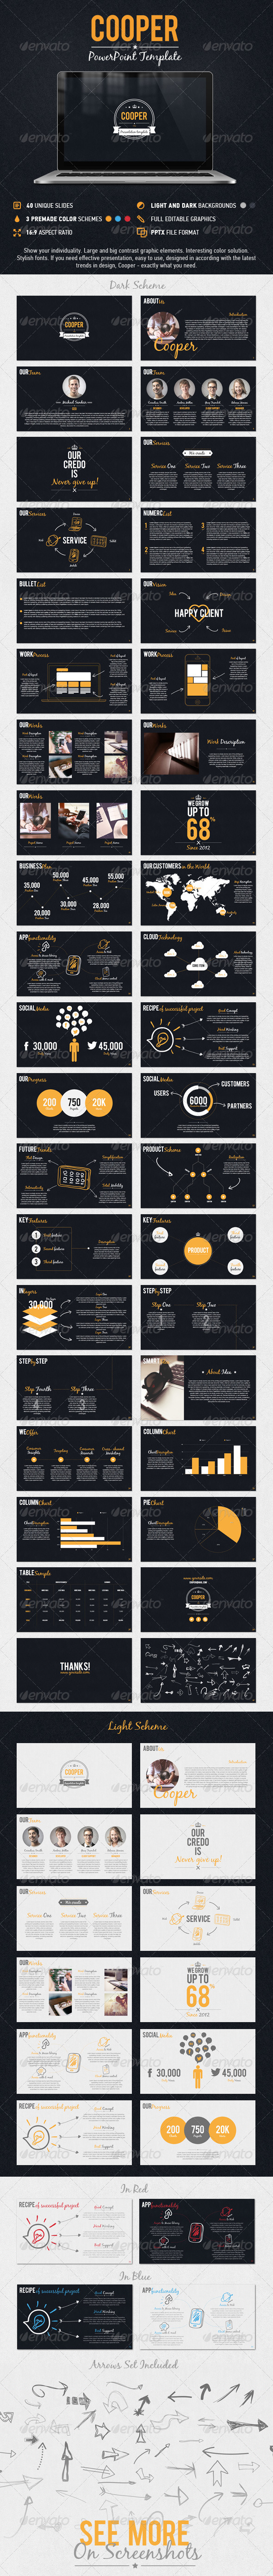 GraphicRiver Cooper PowerPoint Presentation Template 8504687